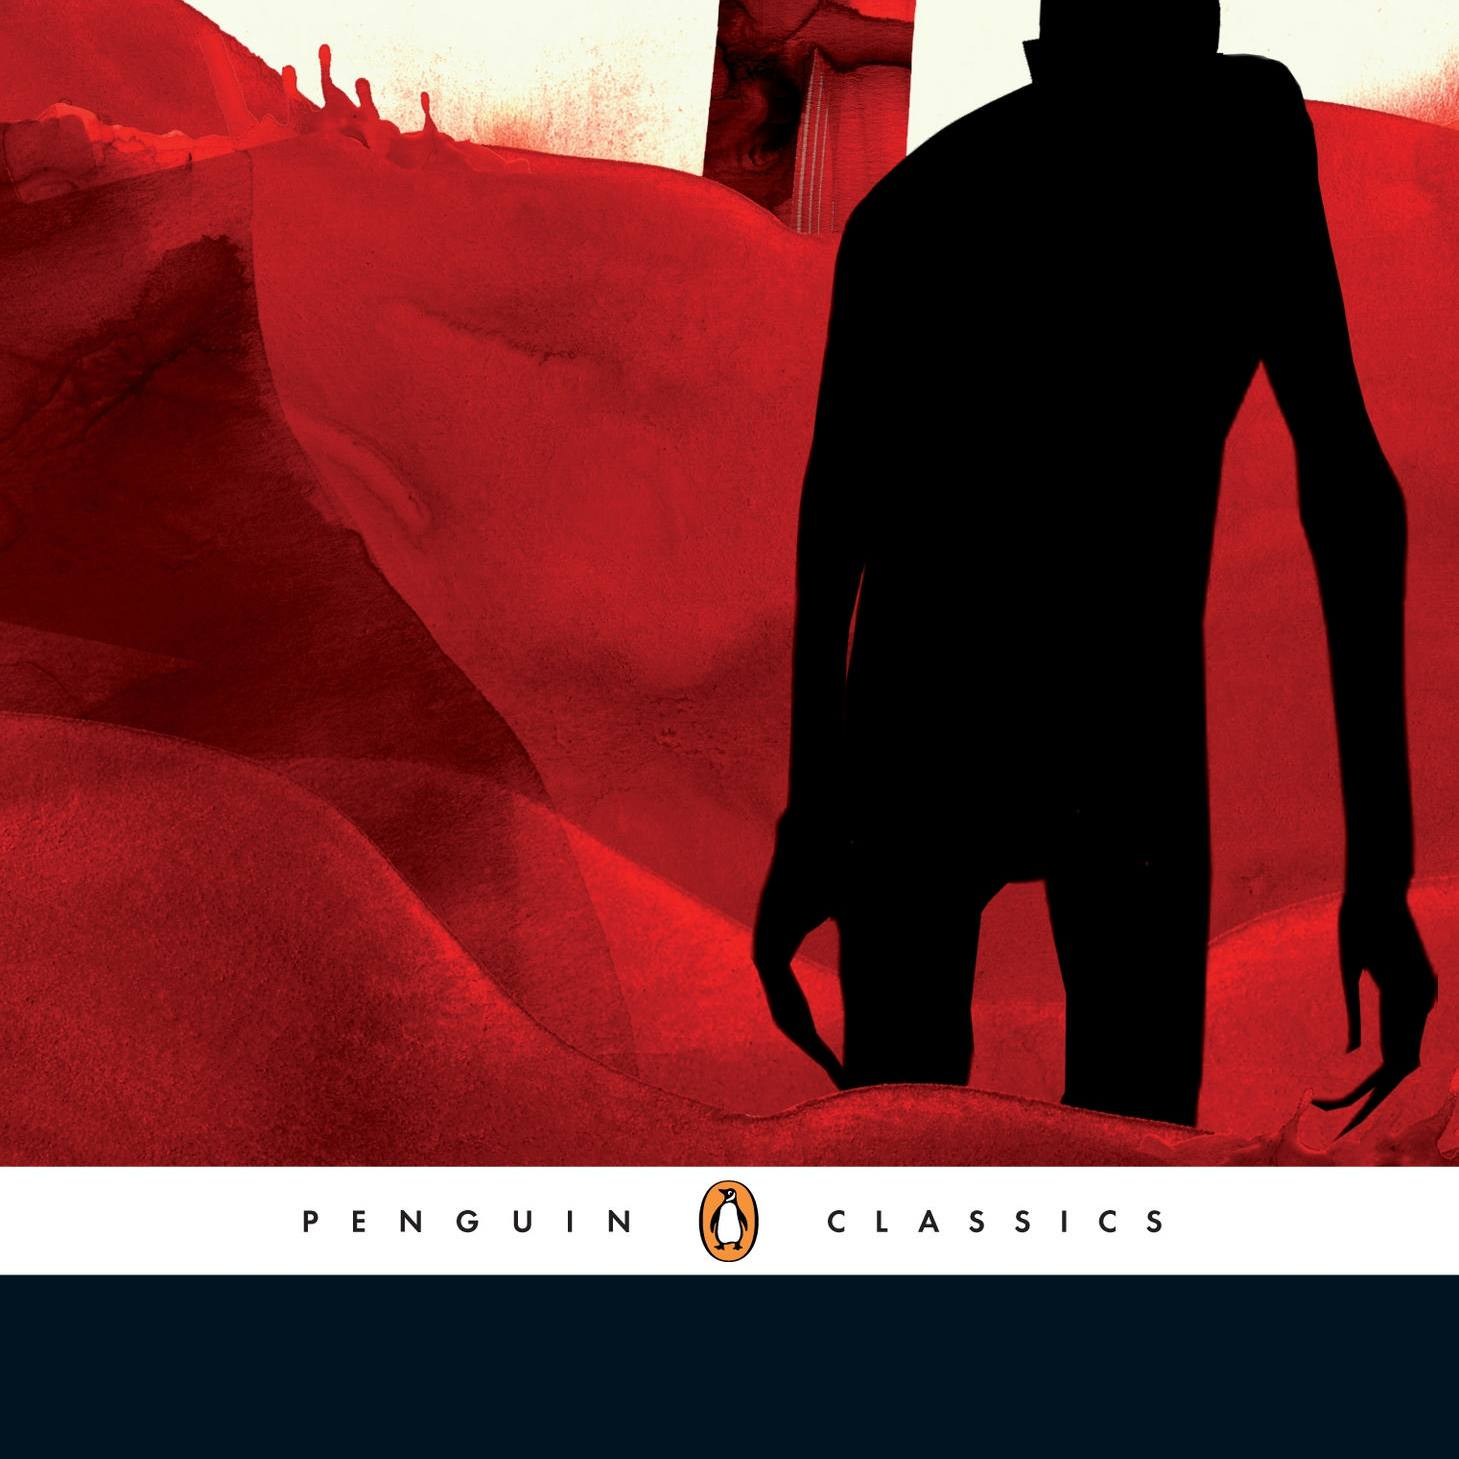 The 9 All-Time Bestselling Horror Novels